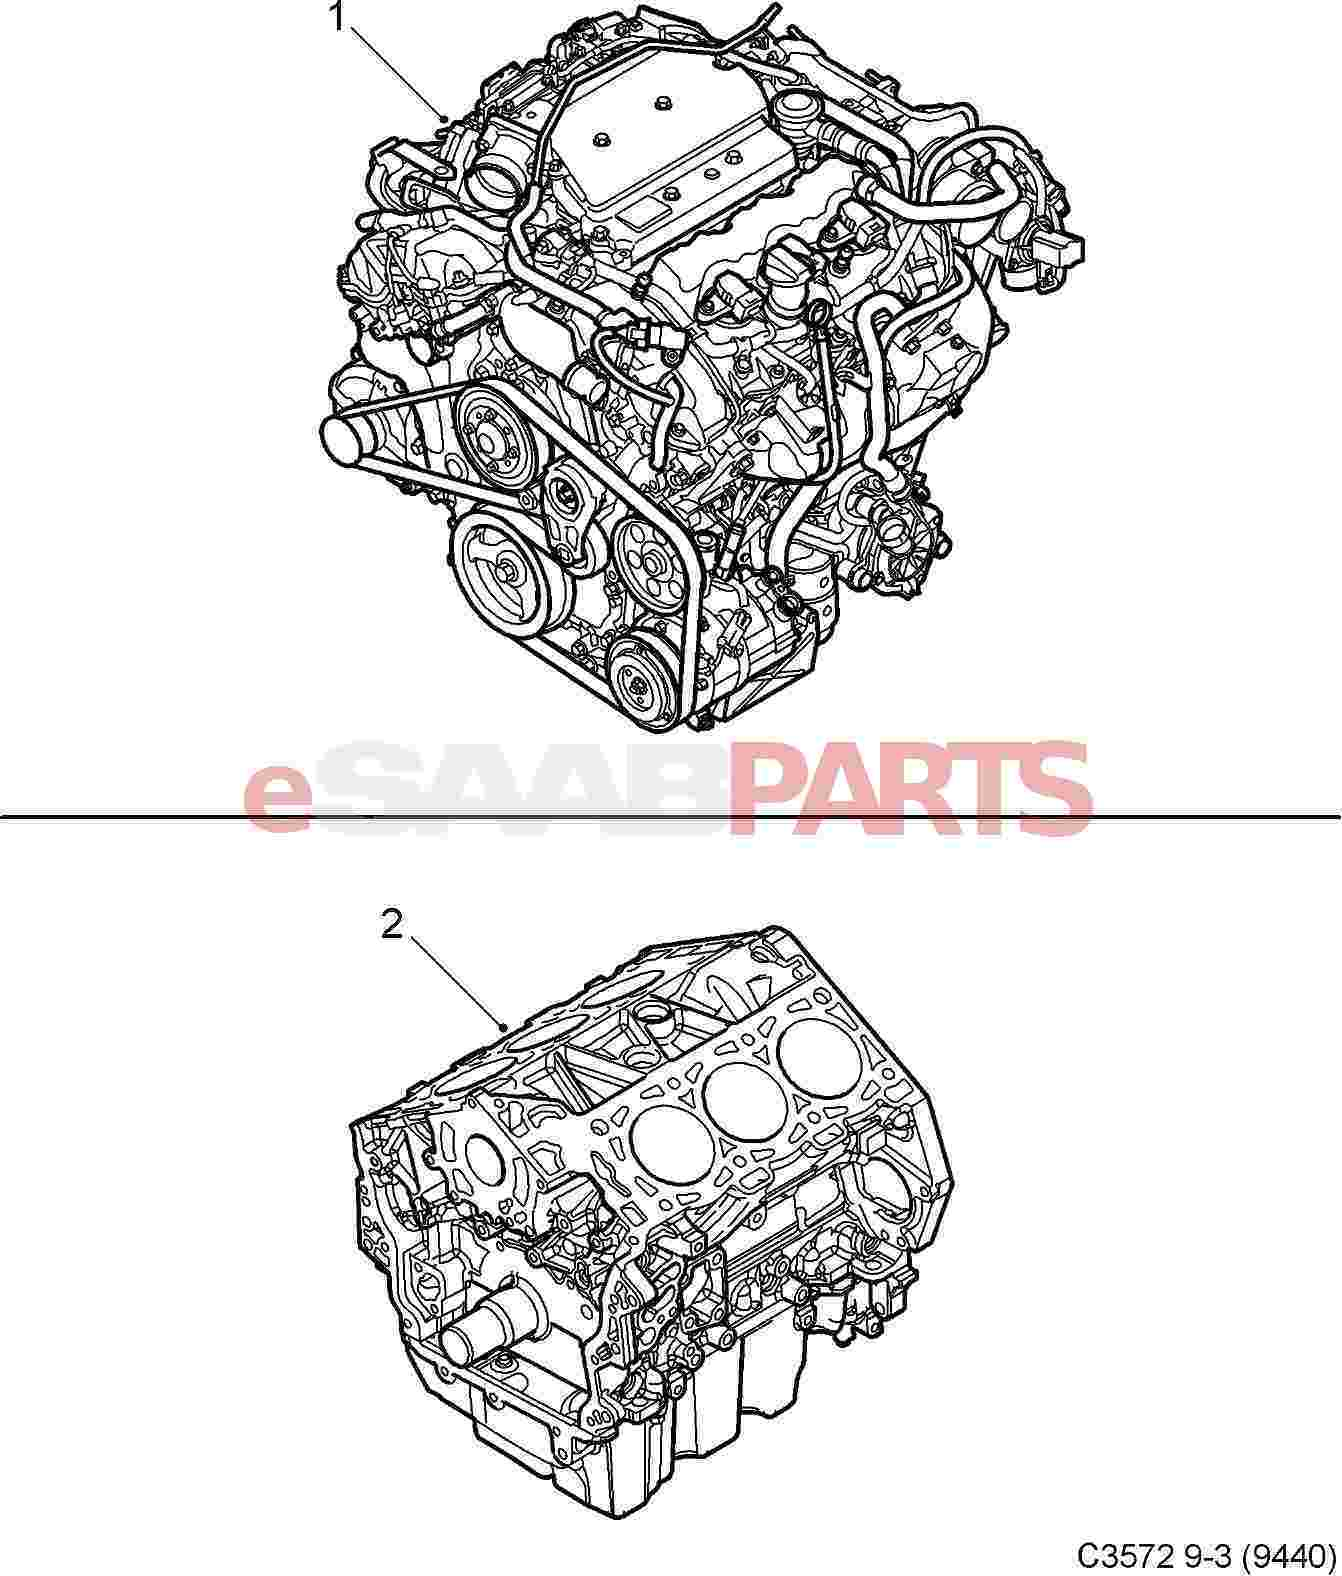 related with ej205 engine diagram